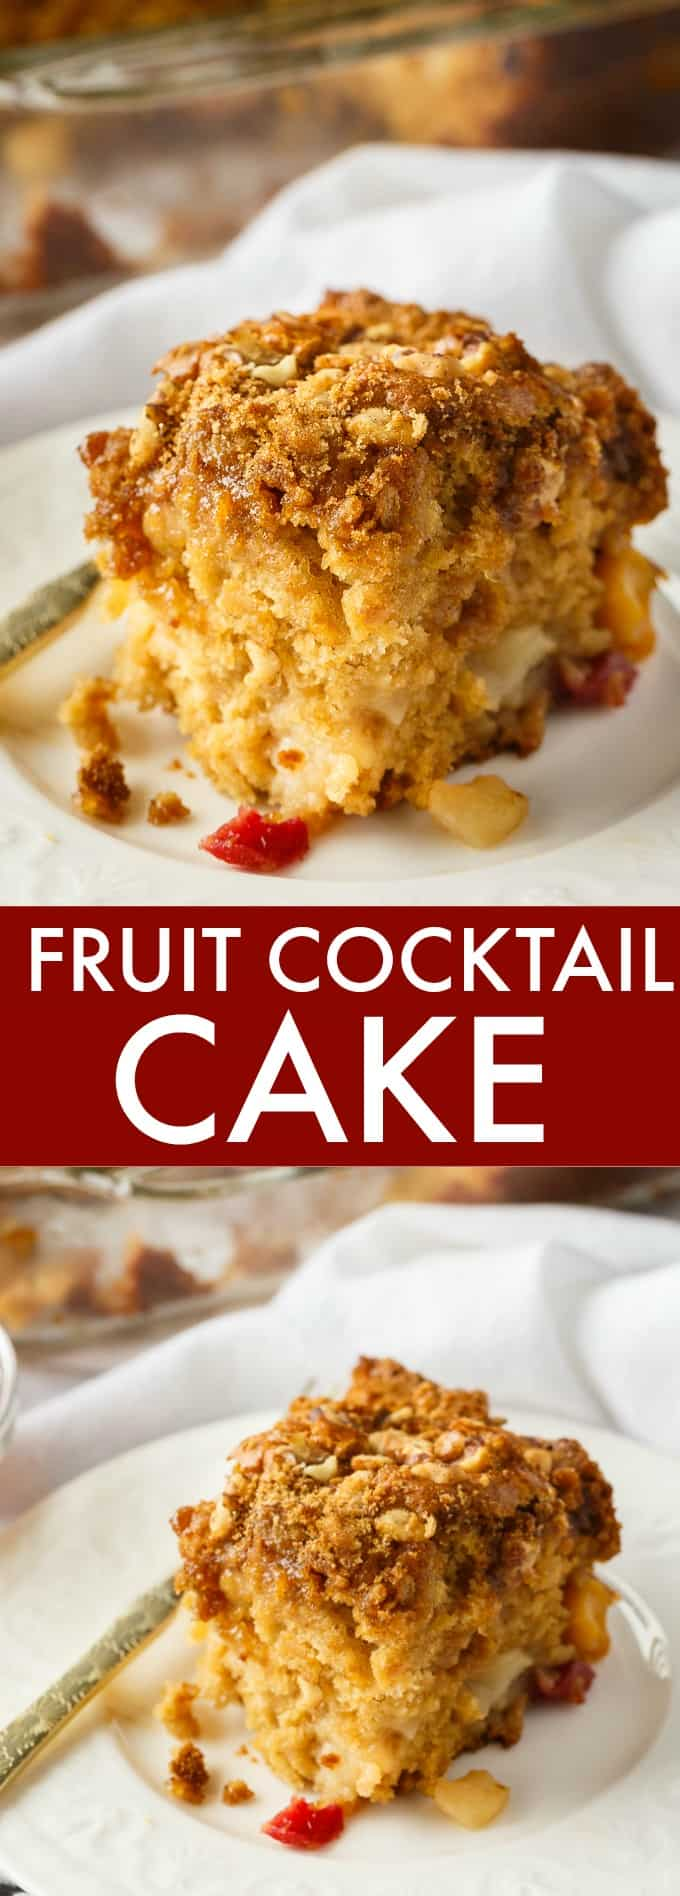 Fruit Cocktail Cake - A super moist vintage cake that everyone loves! It's so easy to make that it practically makes itself.